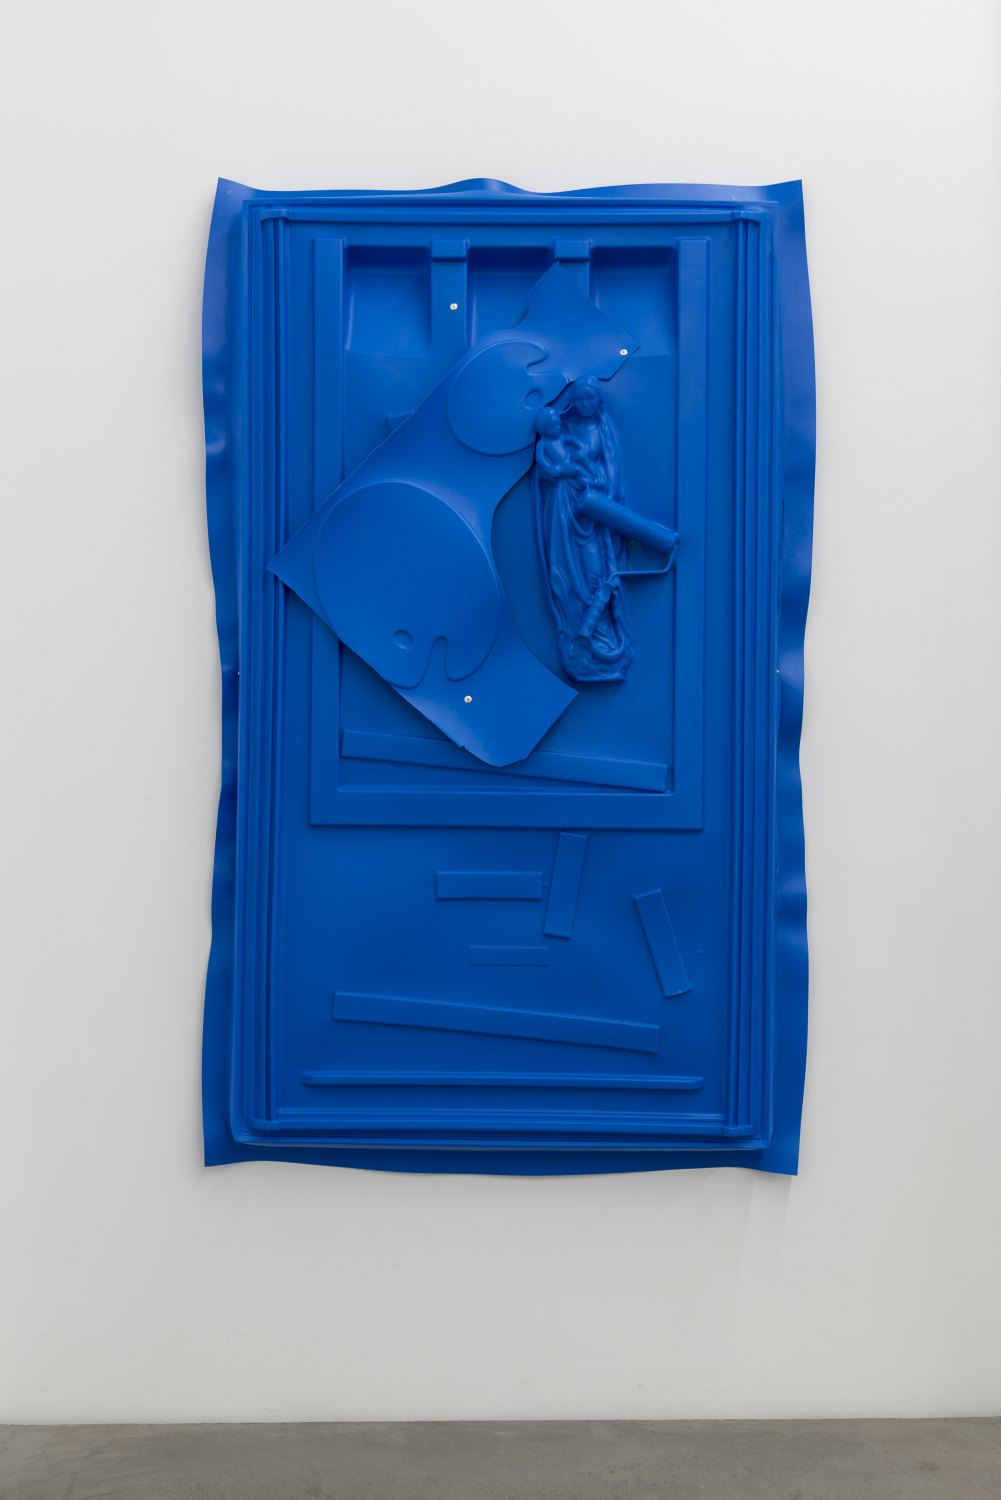 Andreas Slominski Untitled, 2017 Plastic, rivet